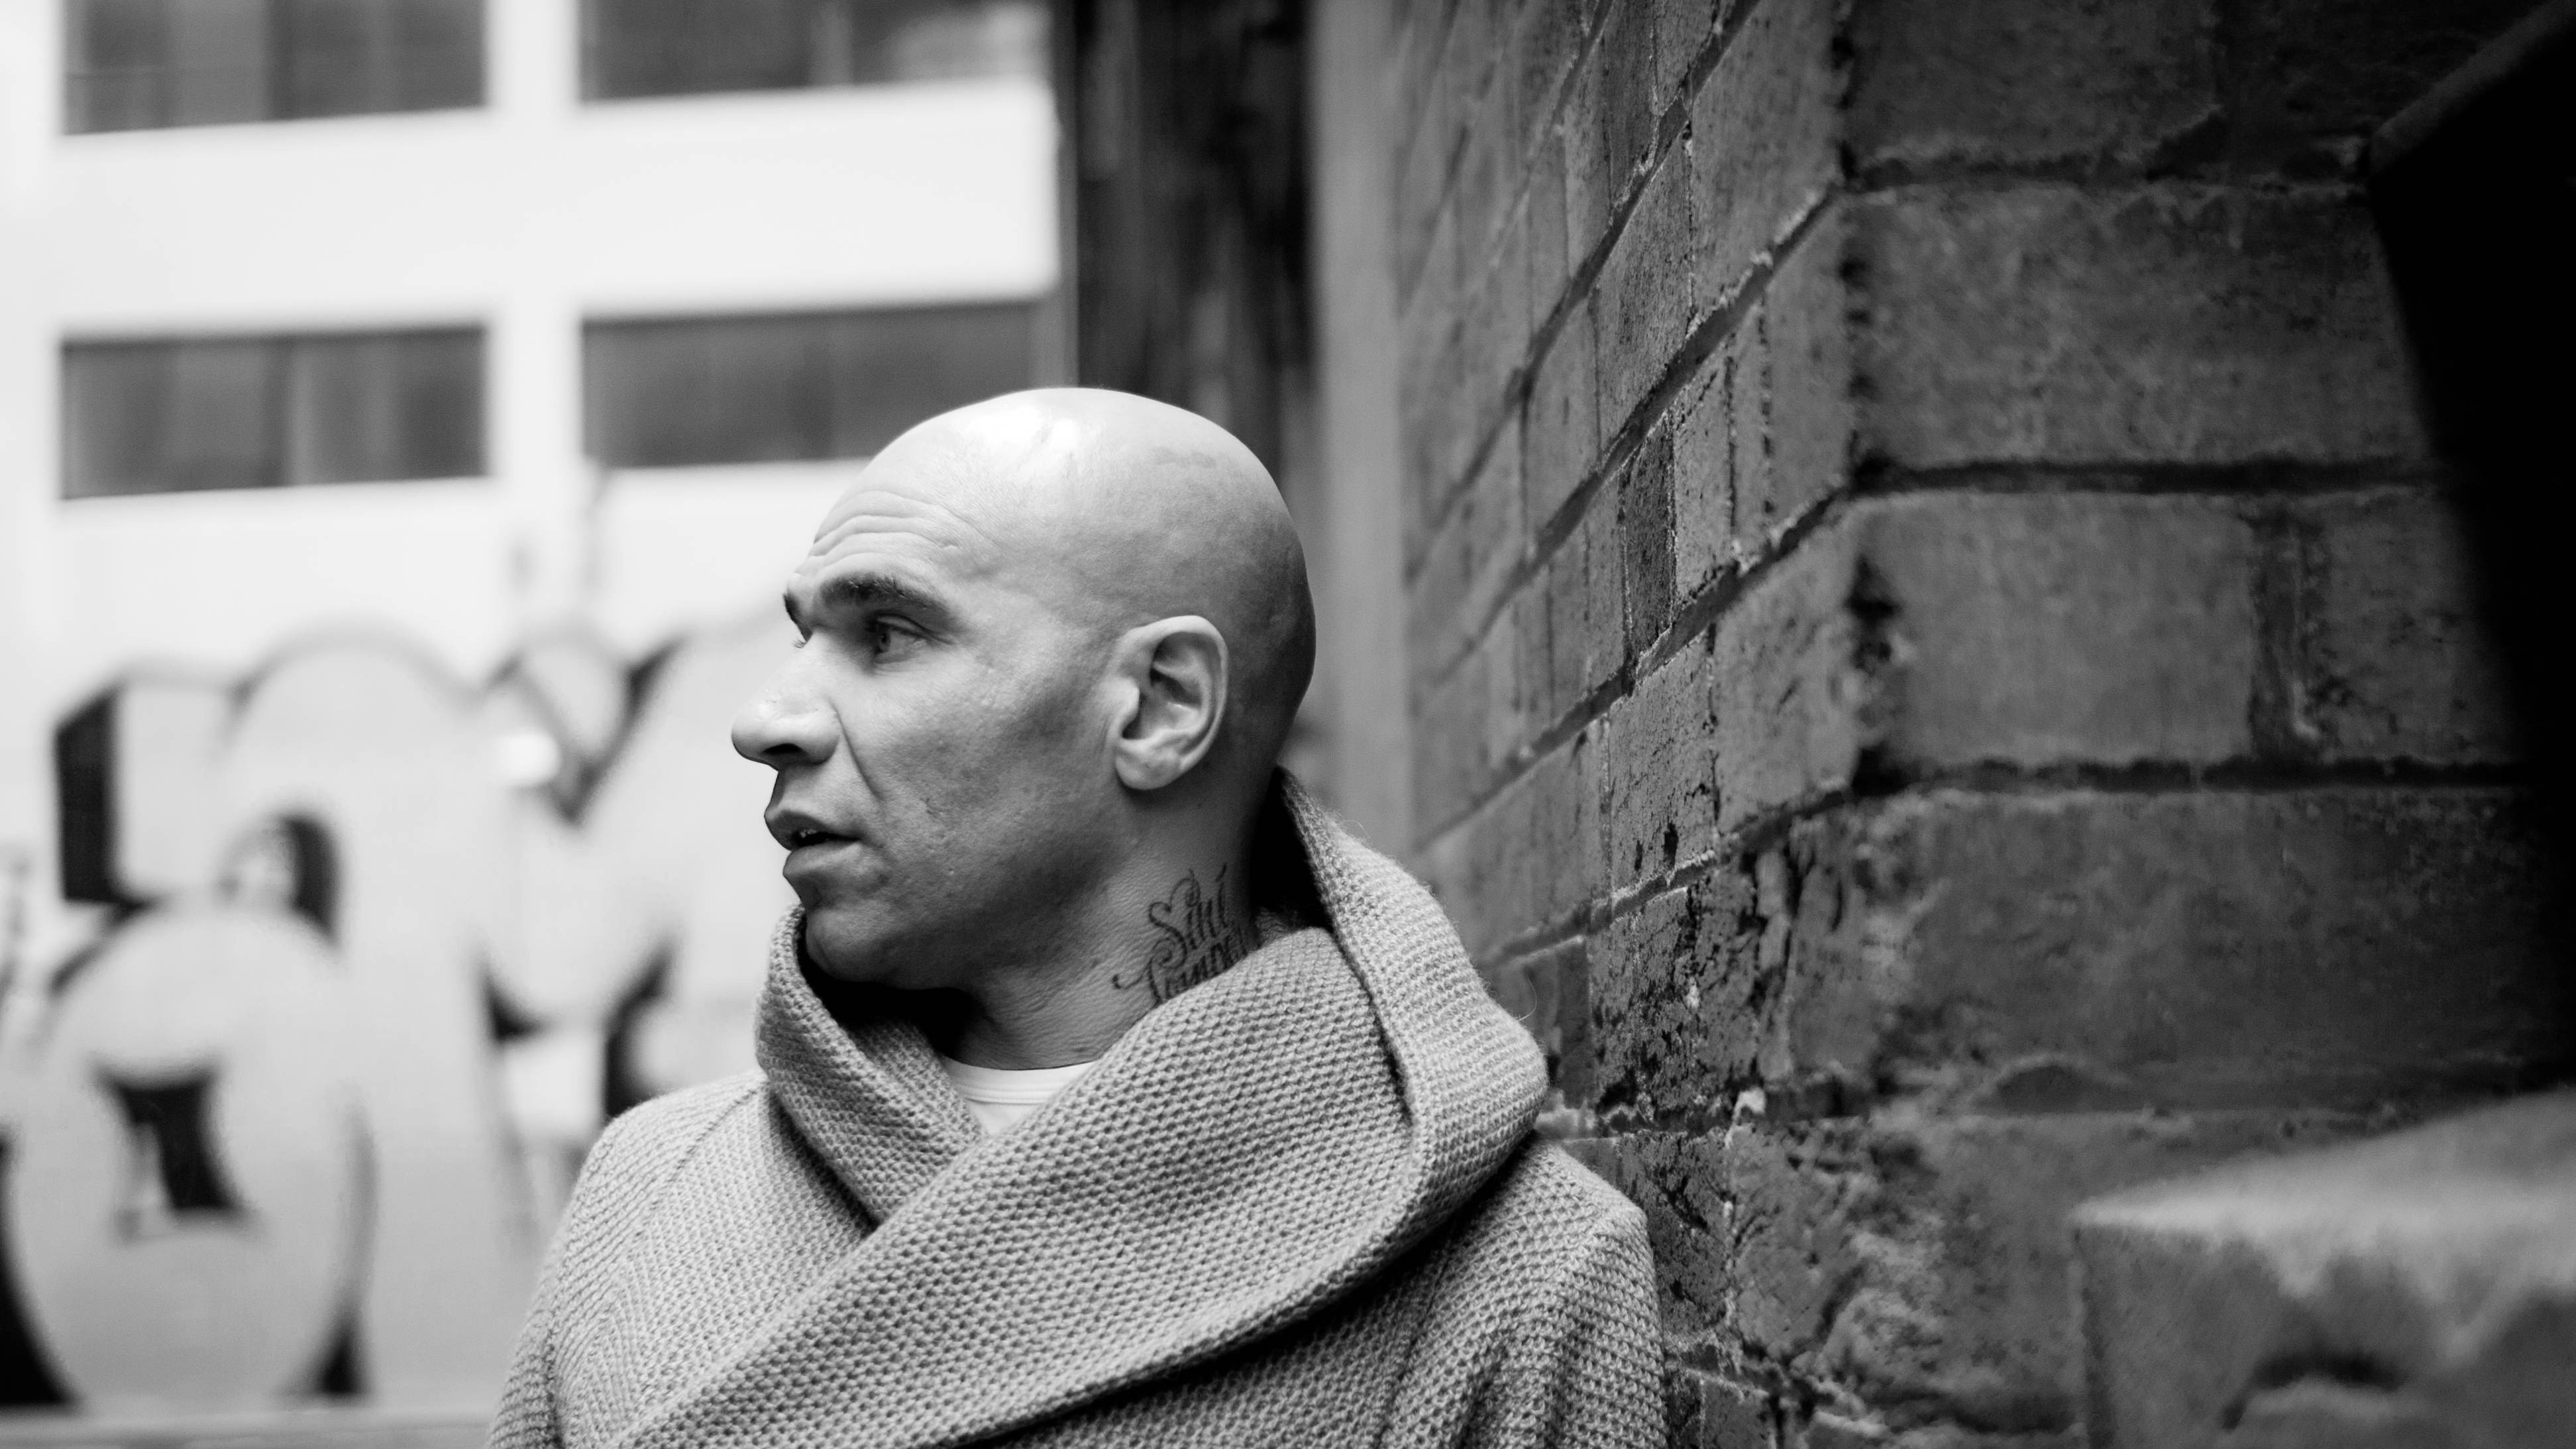 Twenty Years after 'Timeless' and Metalheadz, Goldie Looks Back